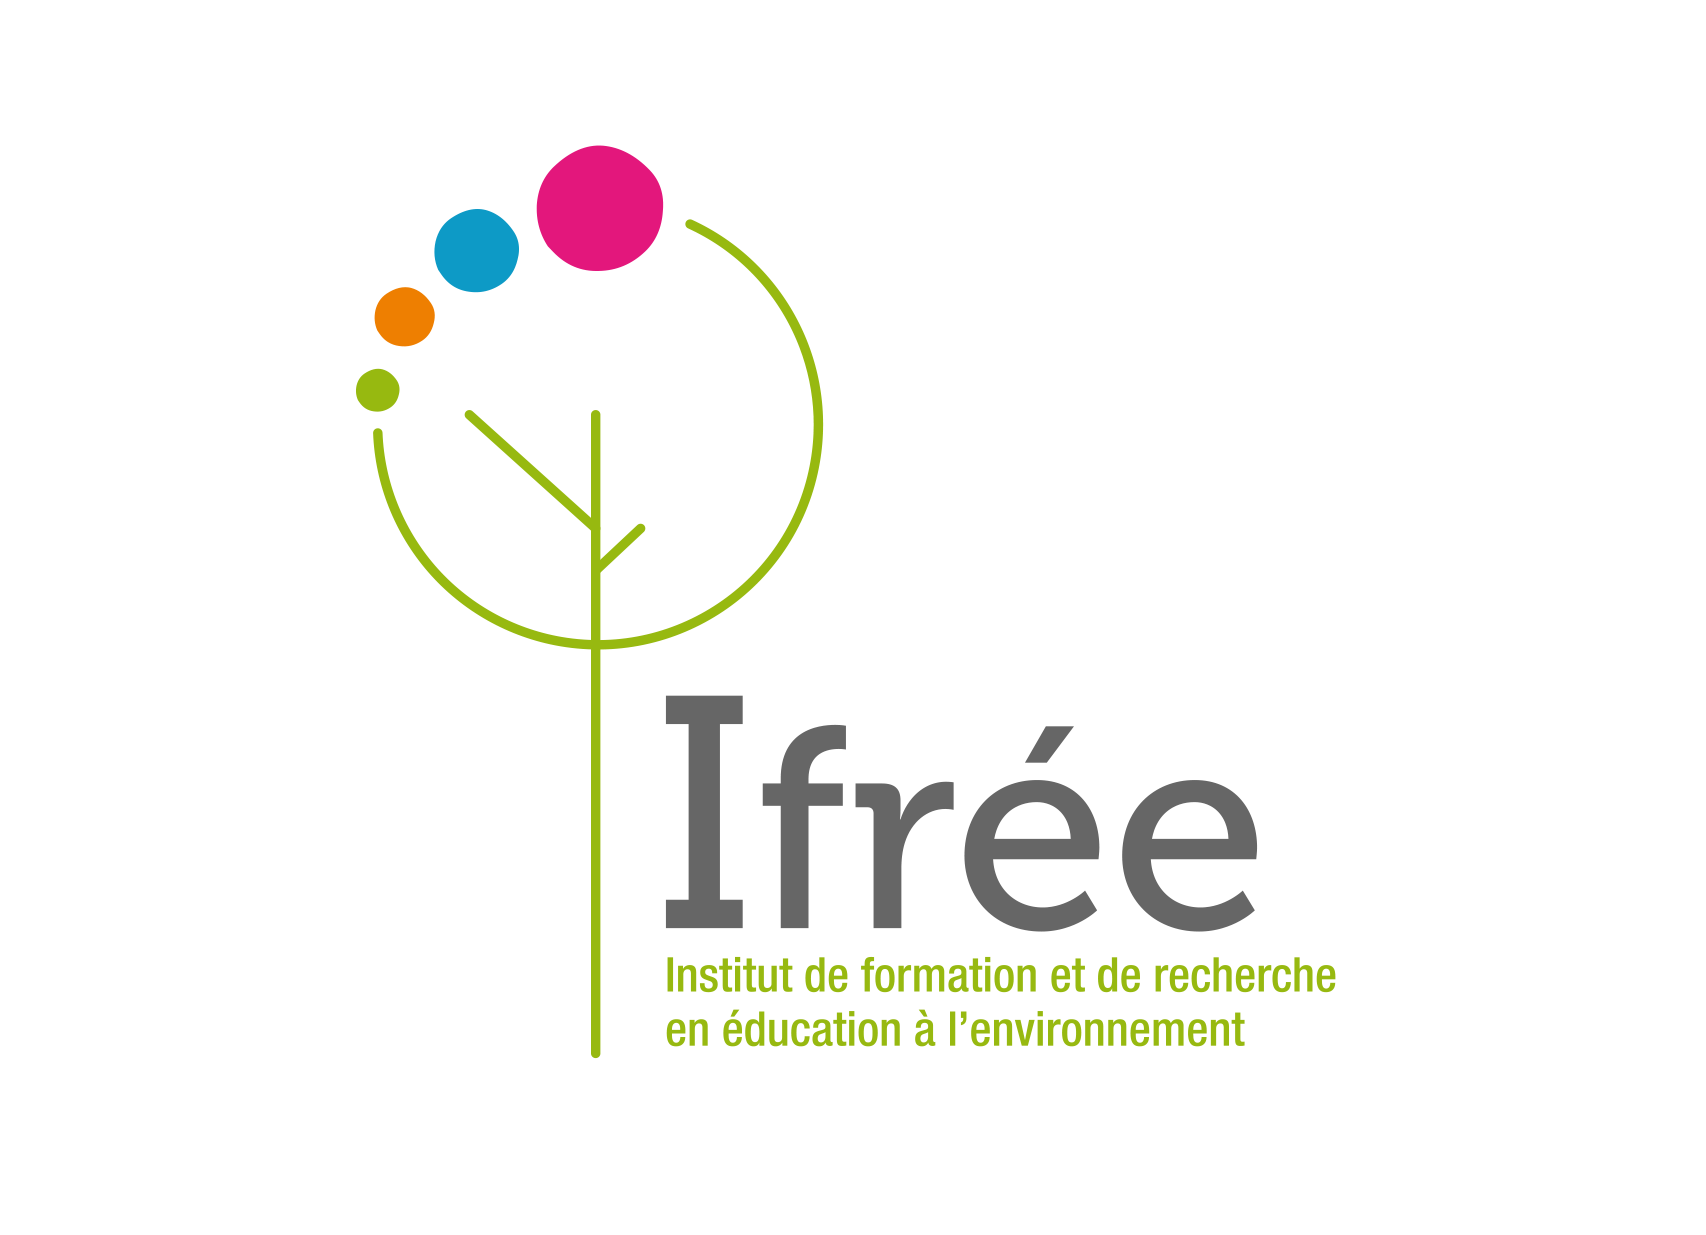 IFREE Logo Quadri signature ar